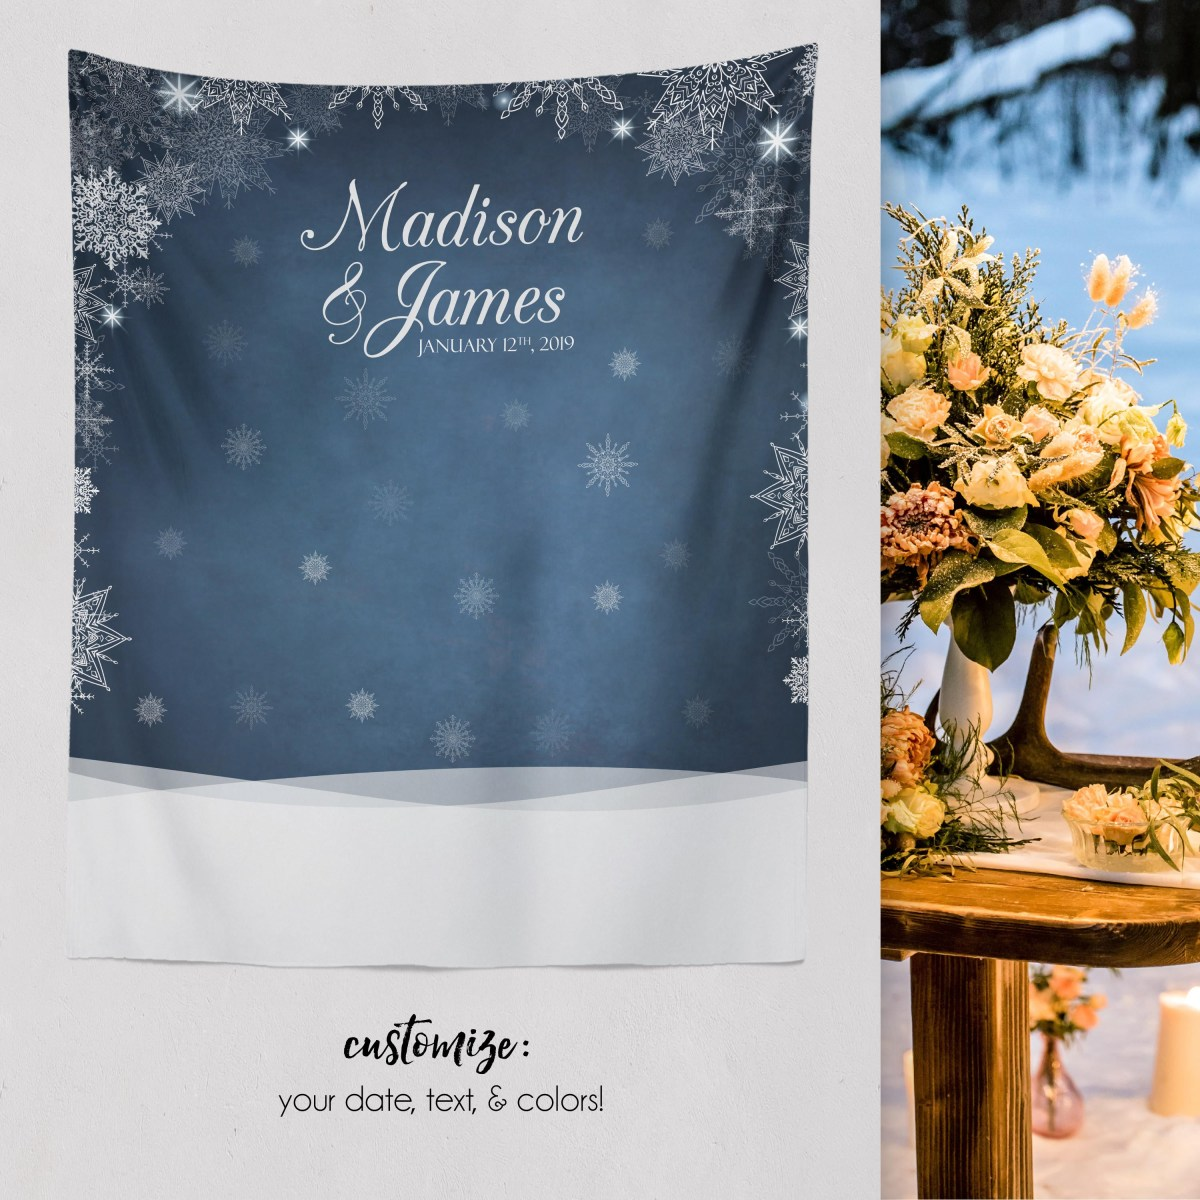 Christmas Wedding Decor Winter Wedding Winter Wedding Decor Winter Engagement Backdrop Christmas Wedding Decor W A33 Tp Aa3